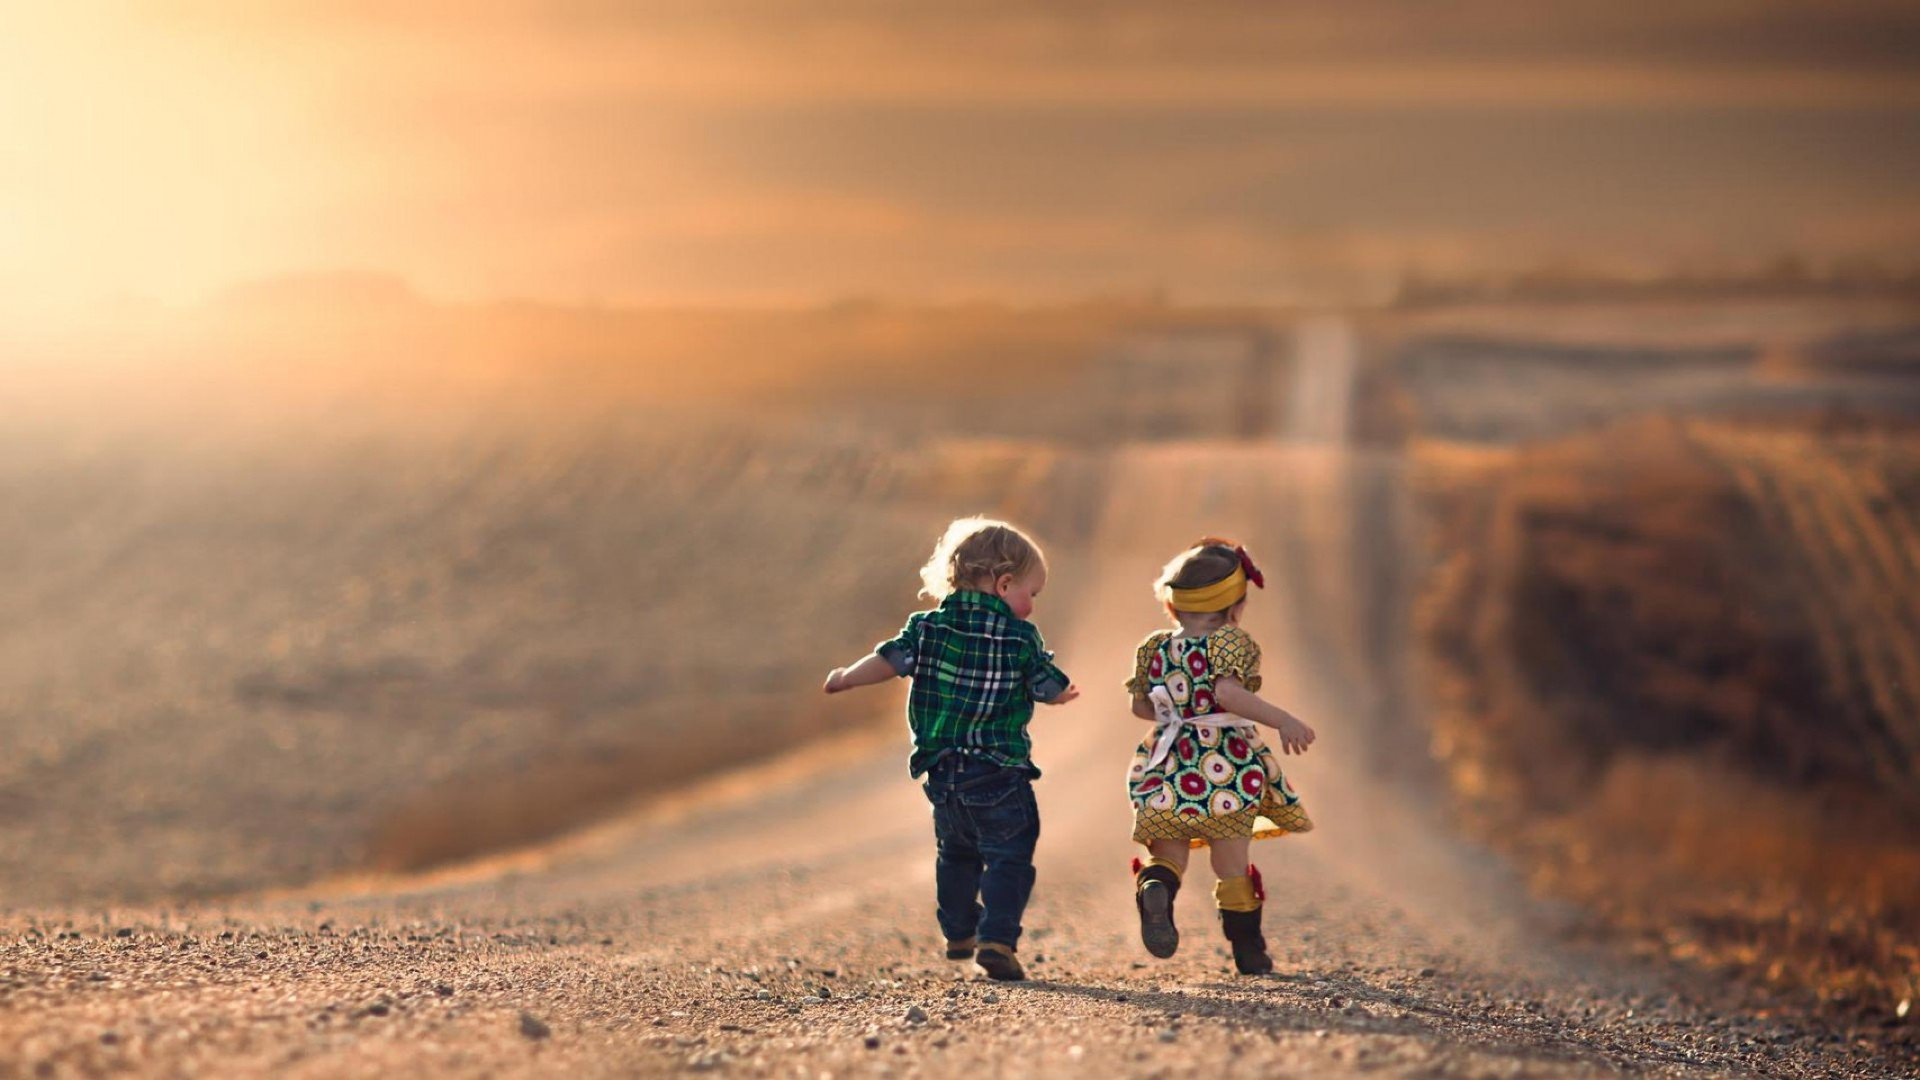 children in nature sunset desert travel child sky dawn landscape sun girl sand outdoors beach